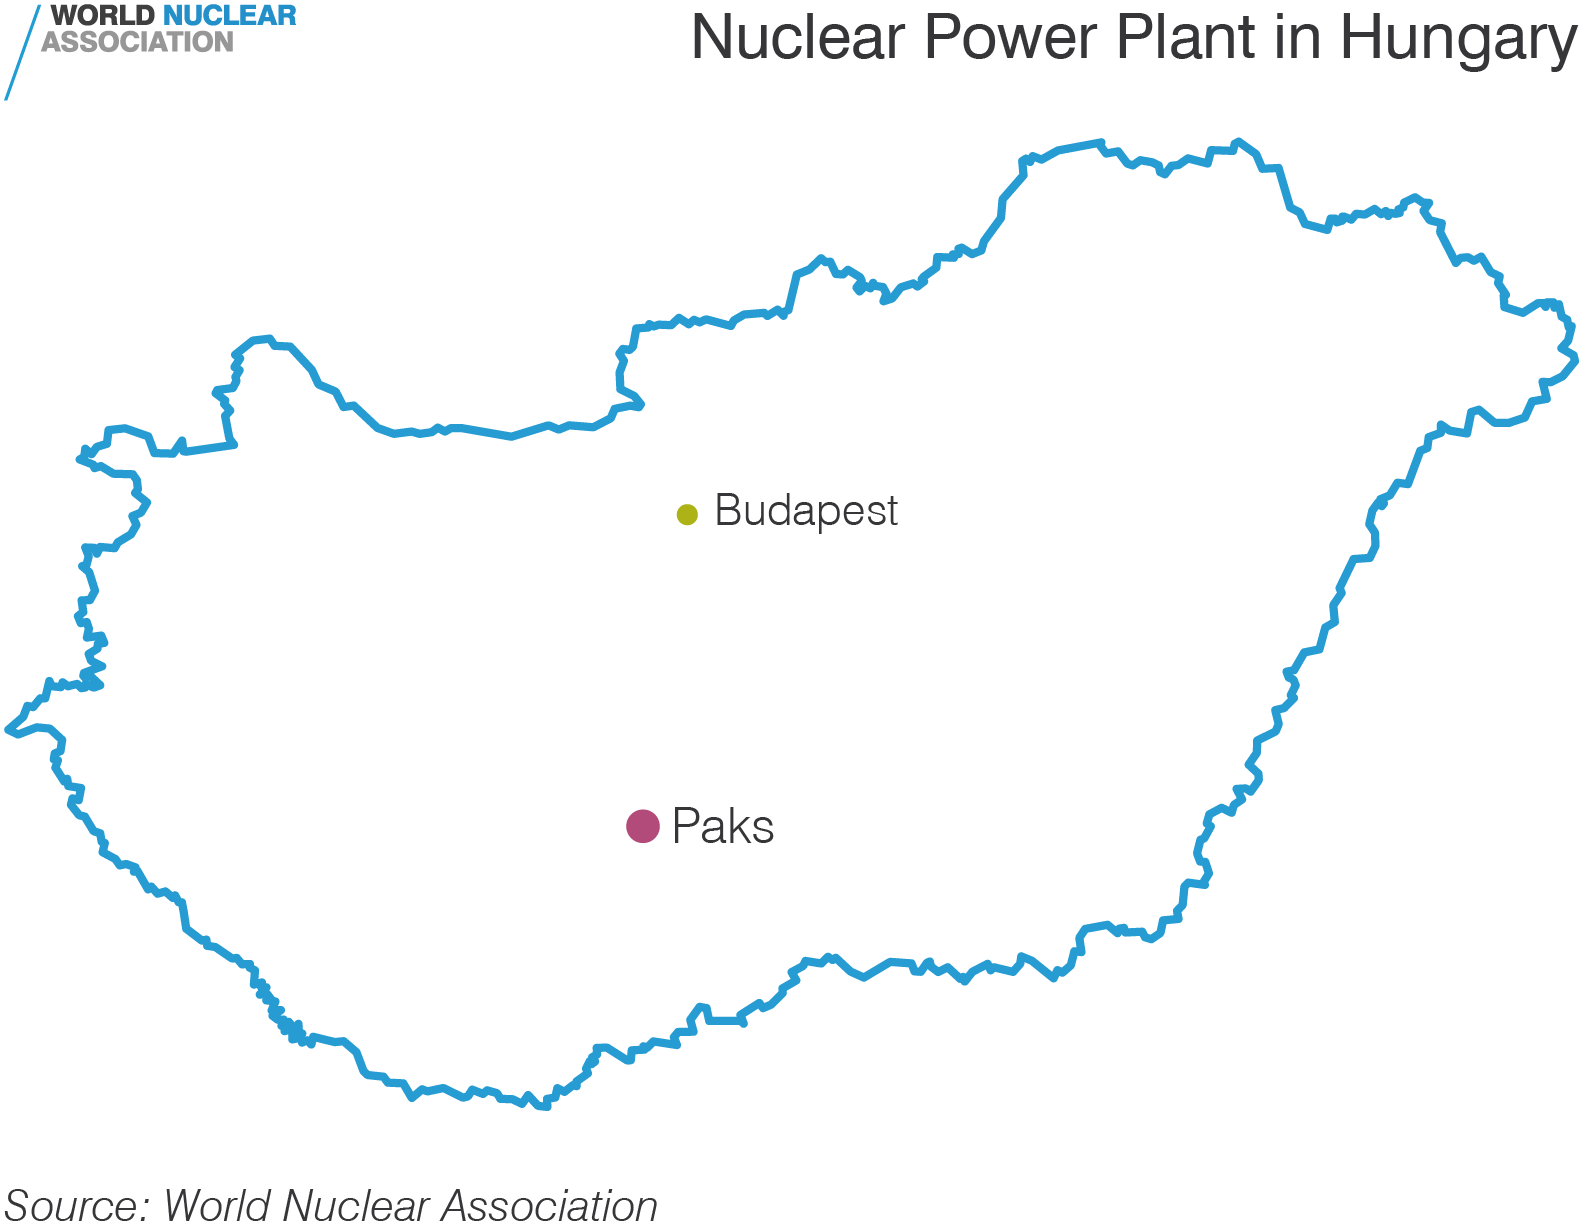 Nuclear Power Plant in Hungary